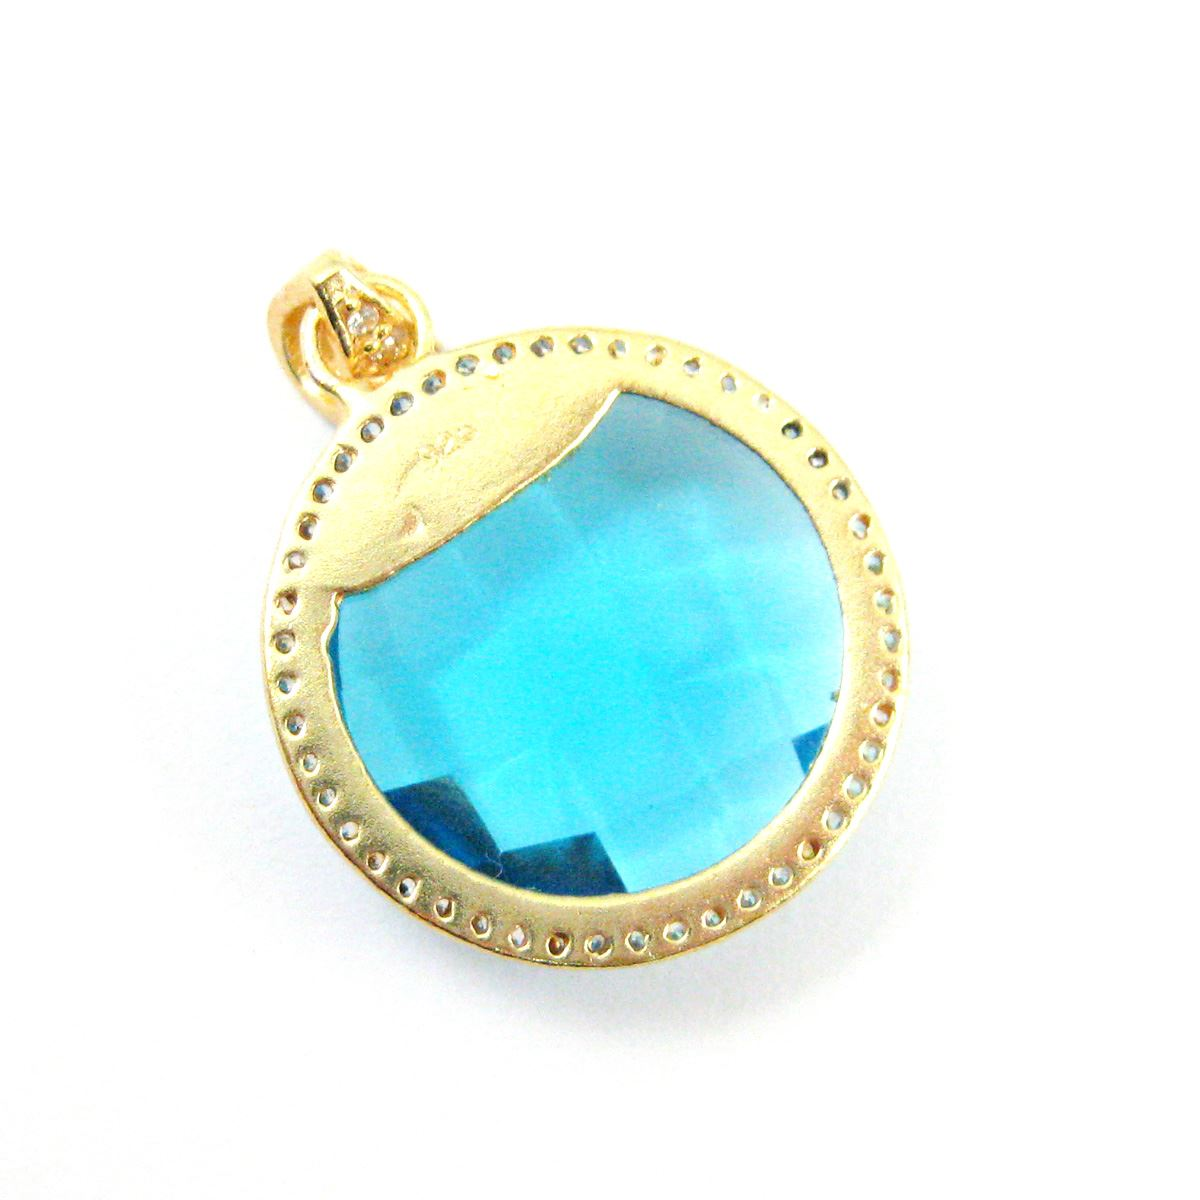 22k Gold plated Sterling Silver Pave Bezel Gemstone Pendant - Cubic Zirconia Pave Setting -  Round Faceted Stone-Blue Topaz Quartz - 21mm